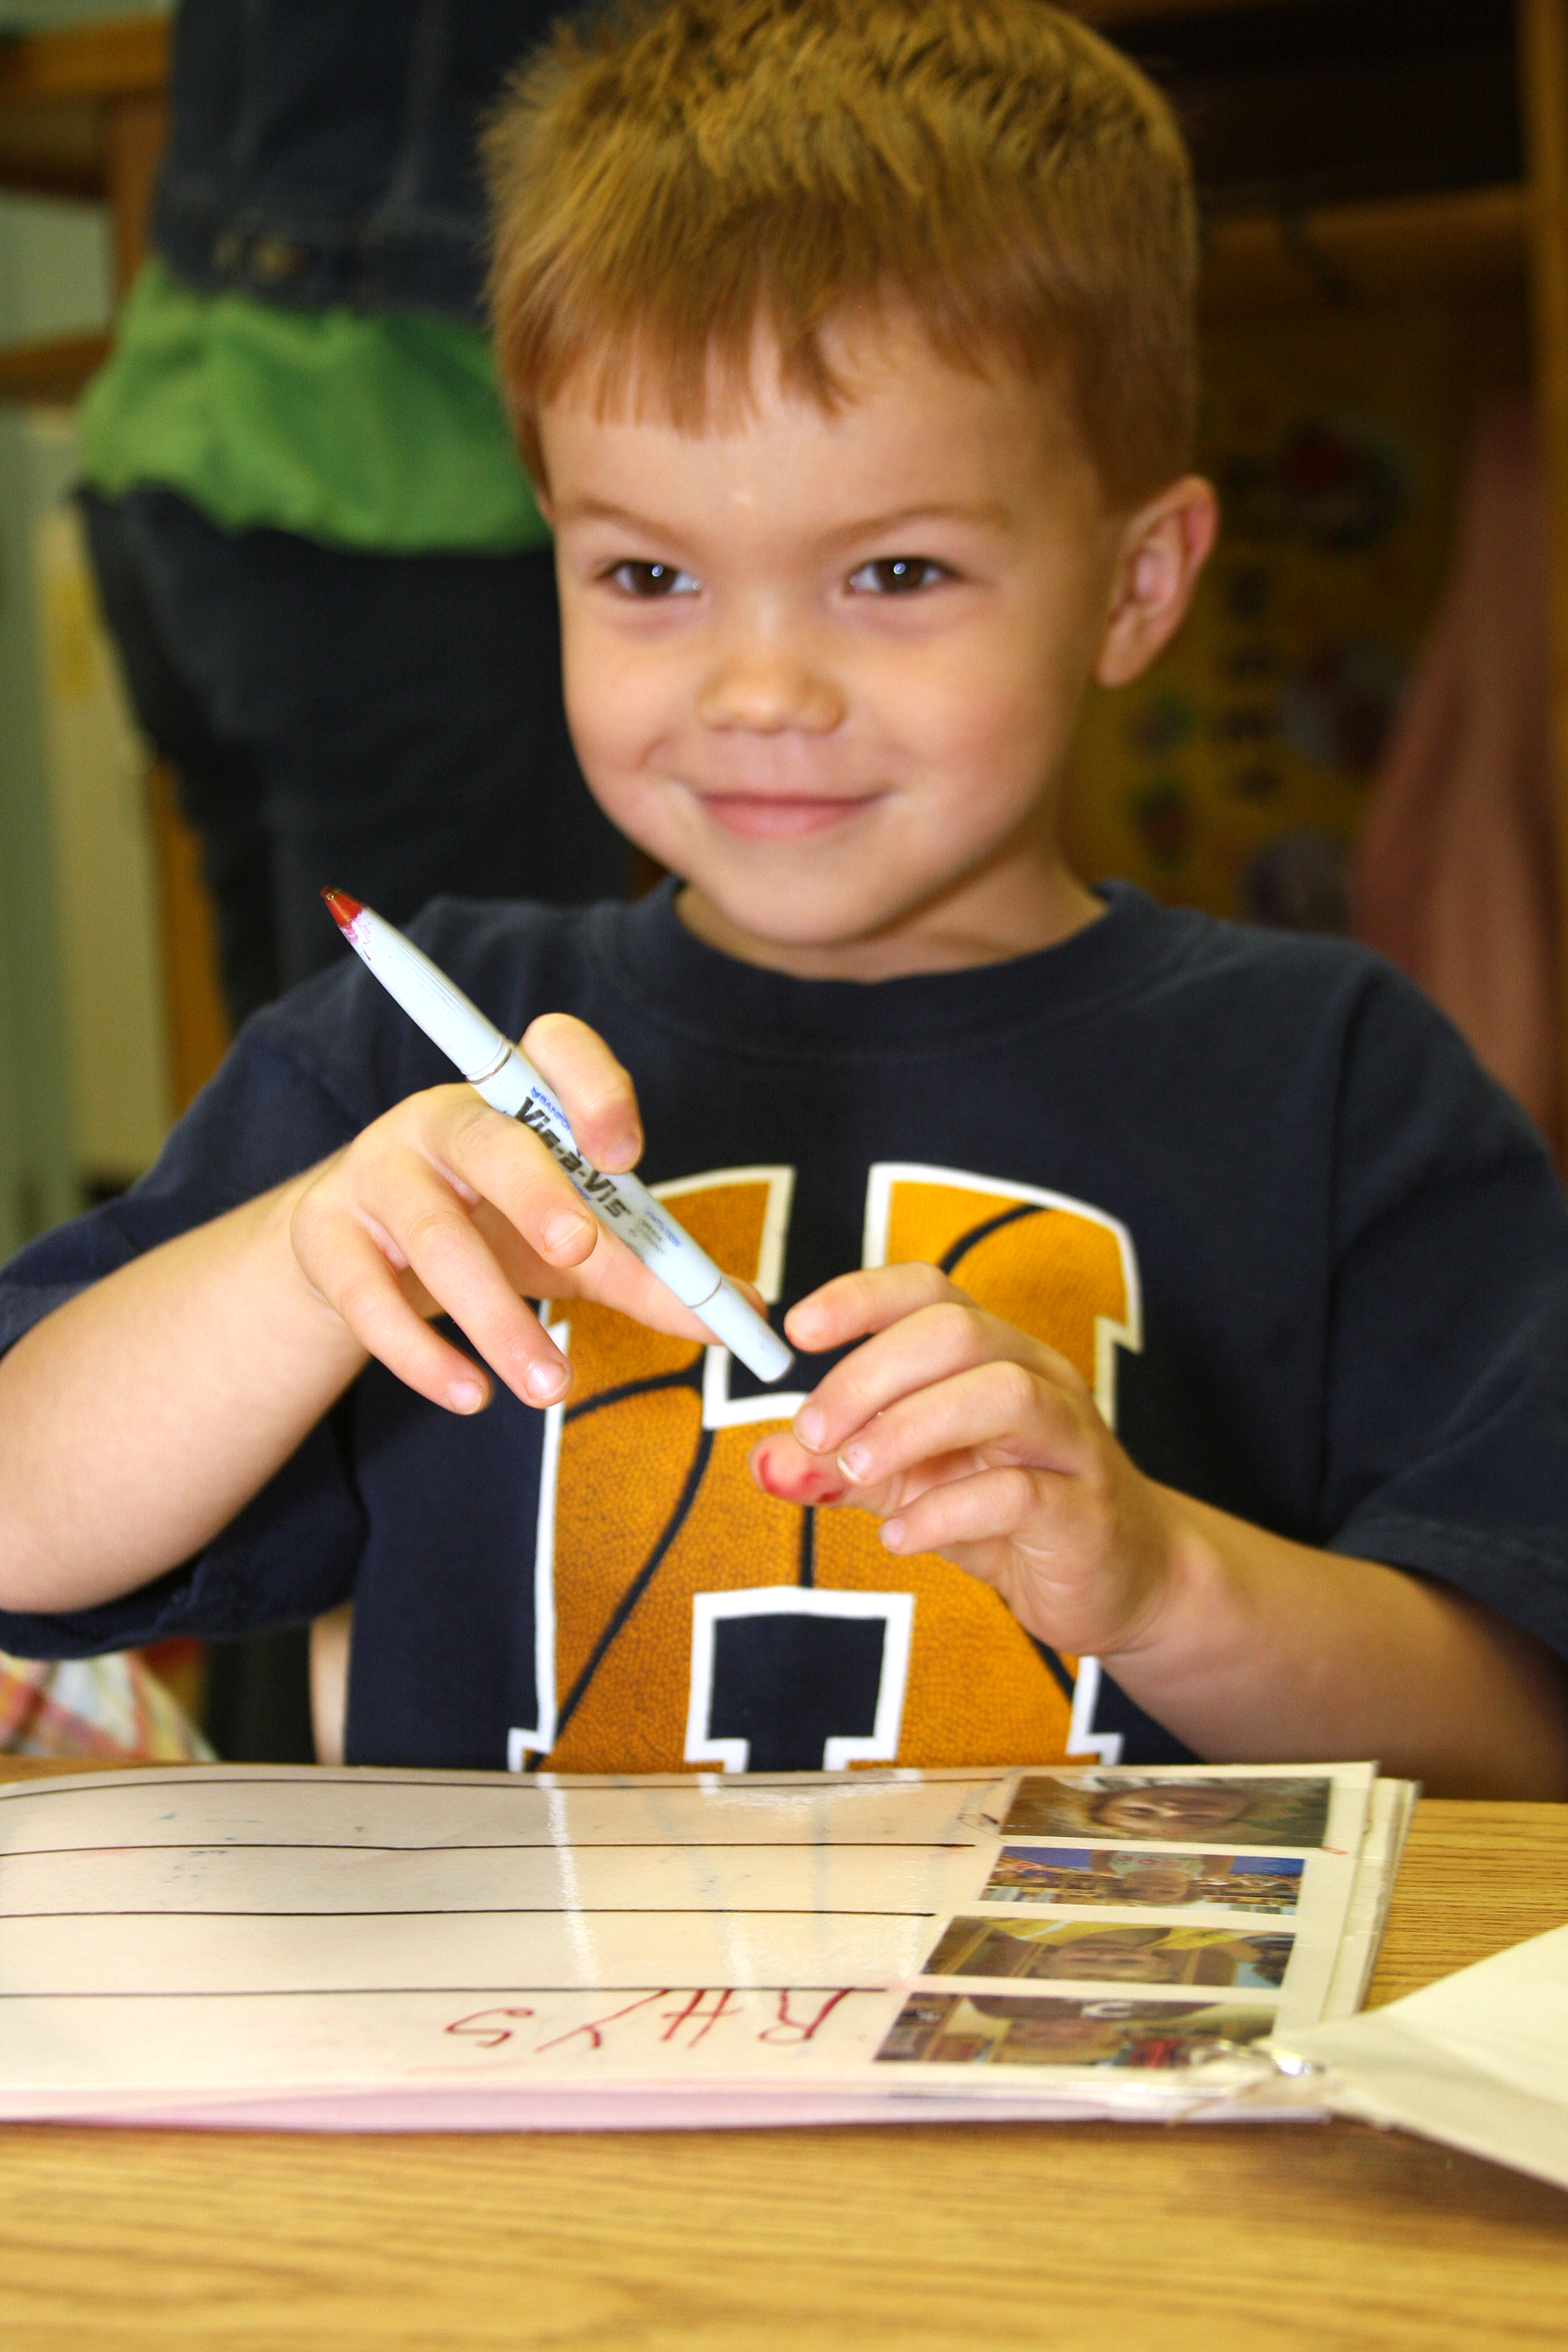 Young boy learning to write his name. May 2010.